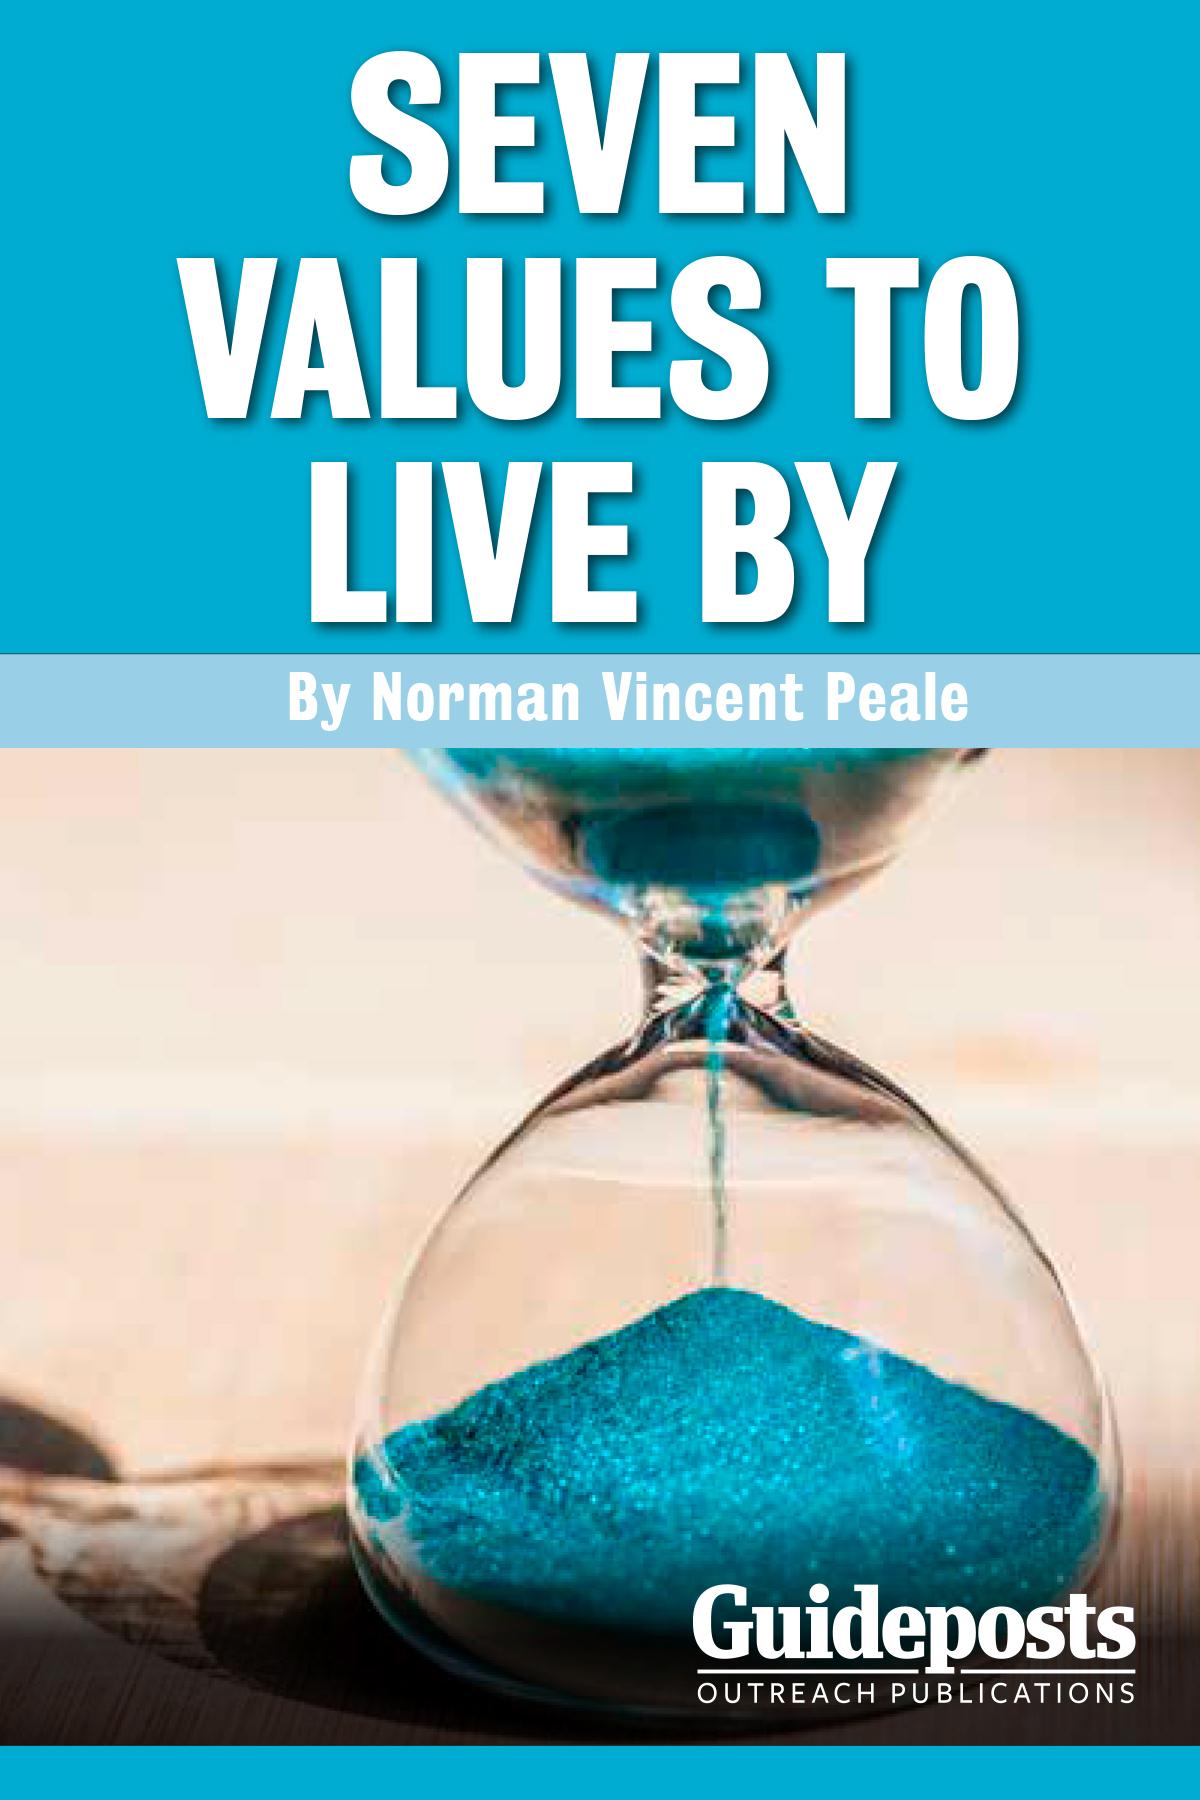 Seven Values to Live By